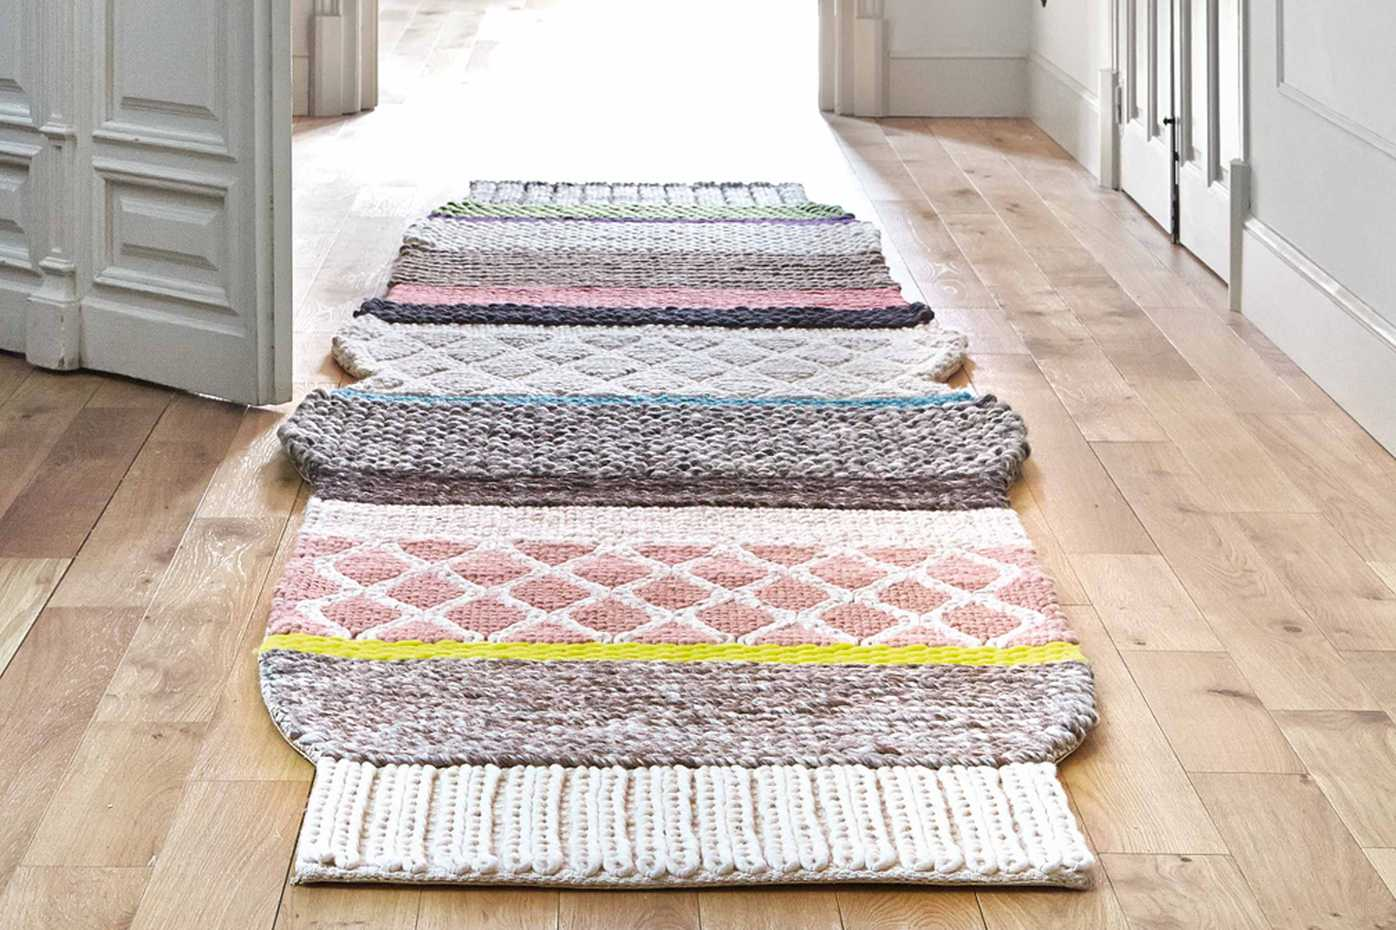 Mangas Original Rugs by Gan Rugs product image 4